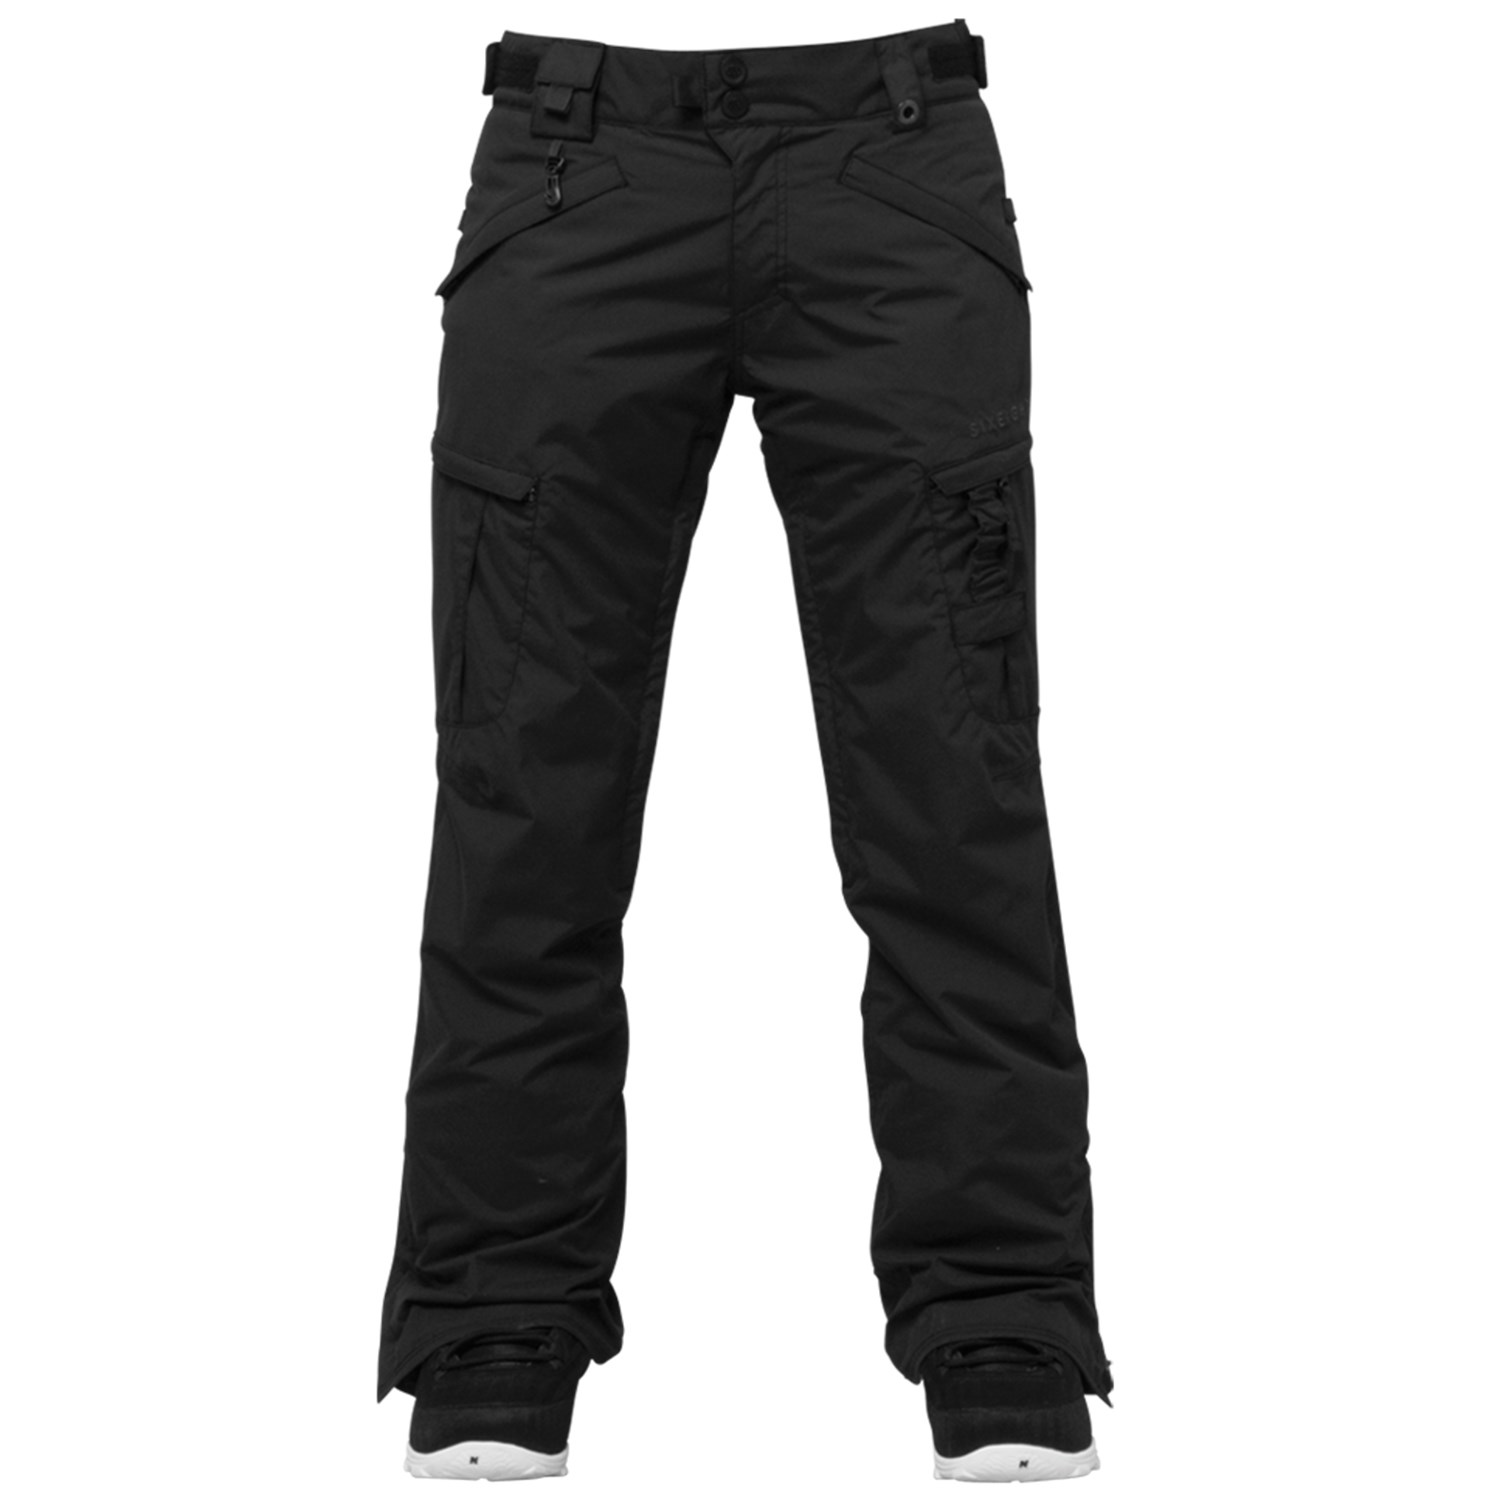 686 Authentic Smarty Cargo Pants - Tall - Women's | evo